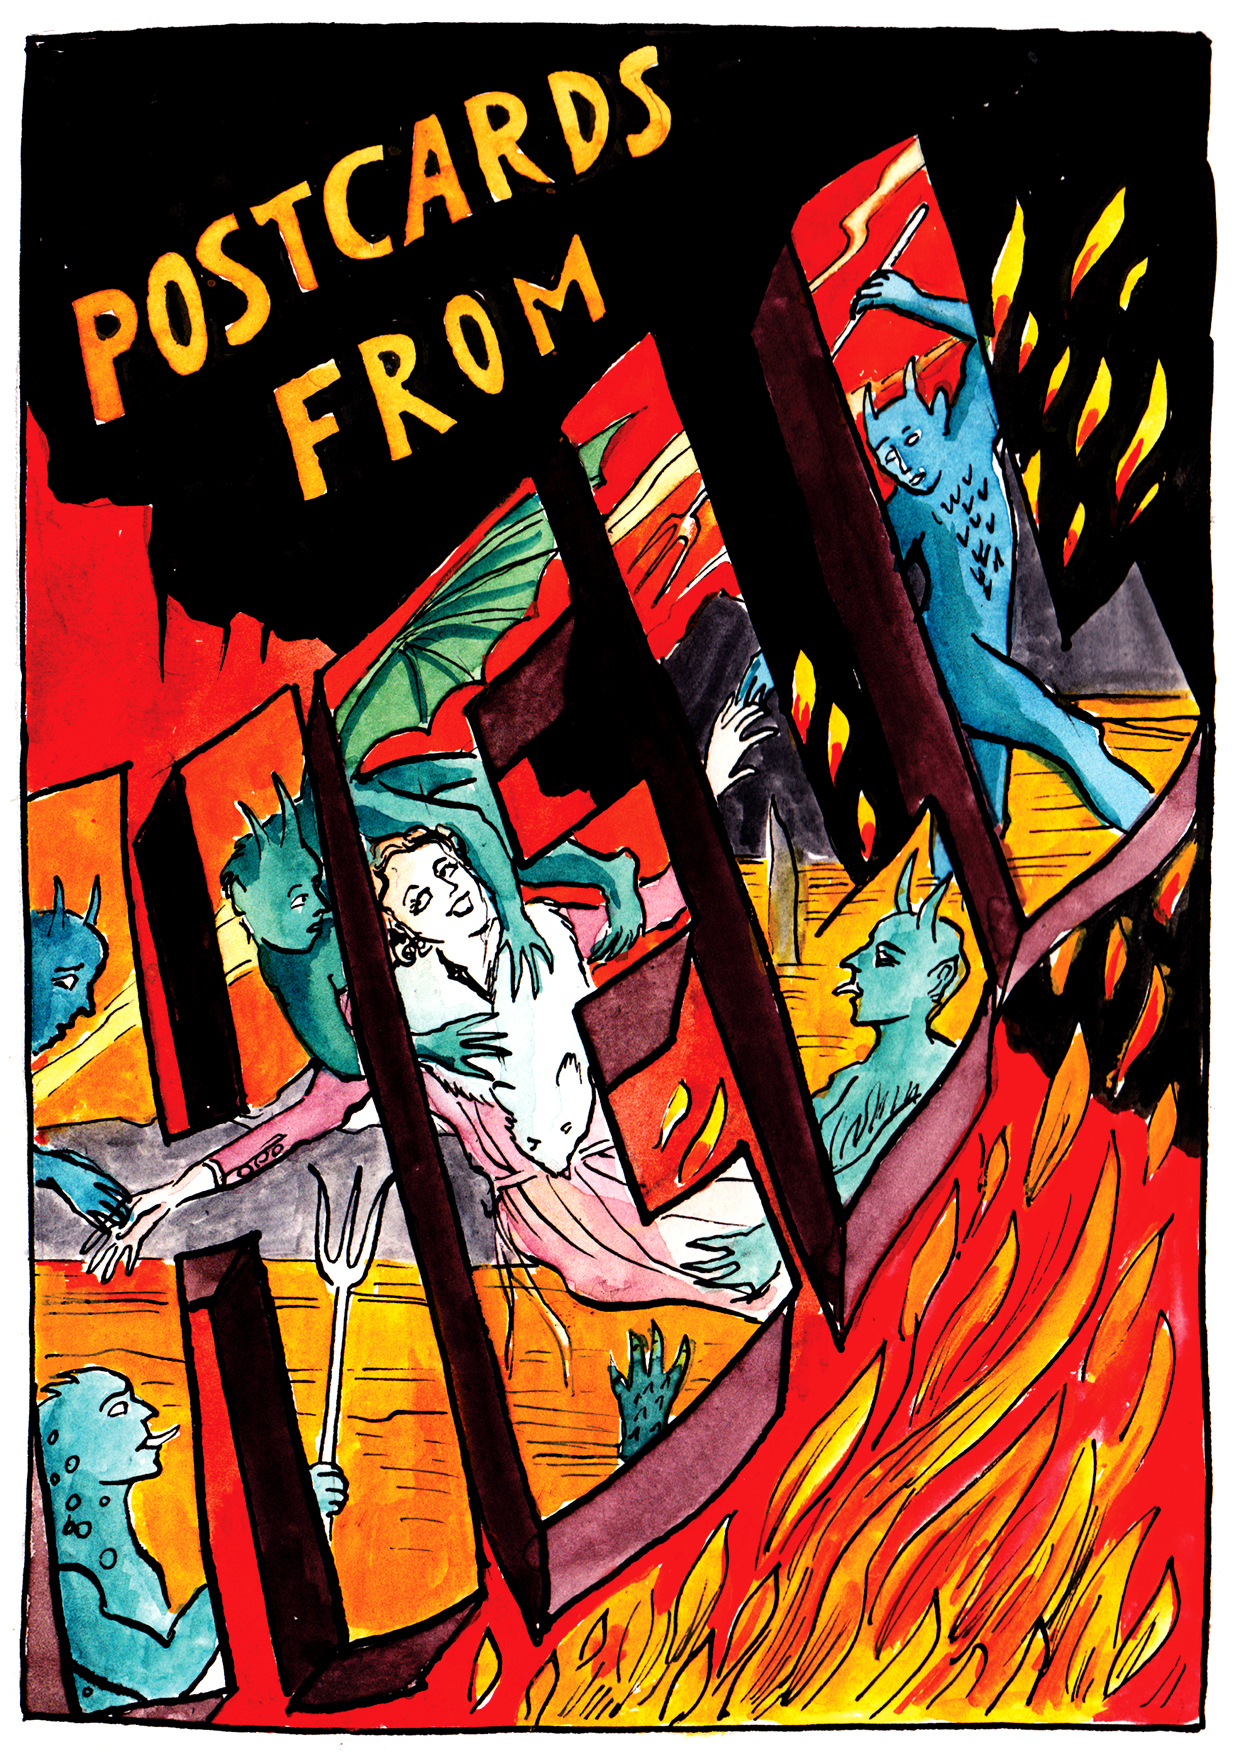 Postcards From Hell